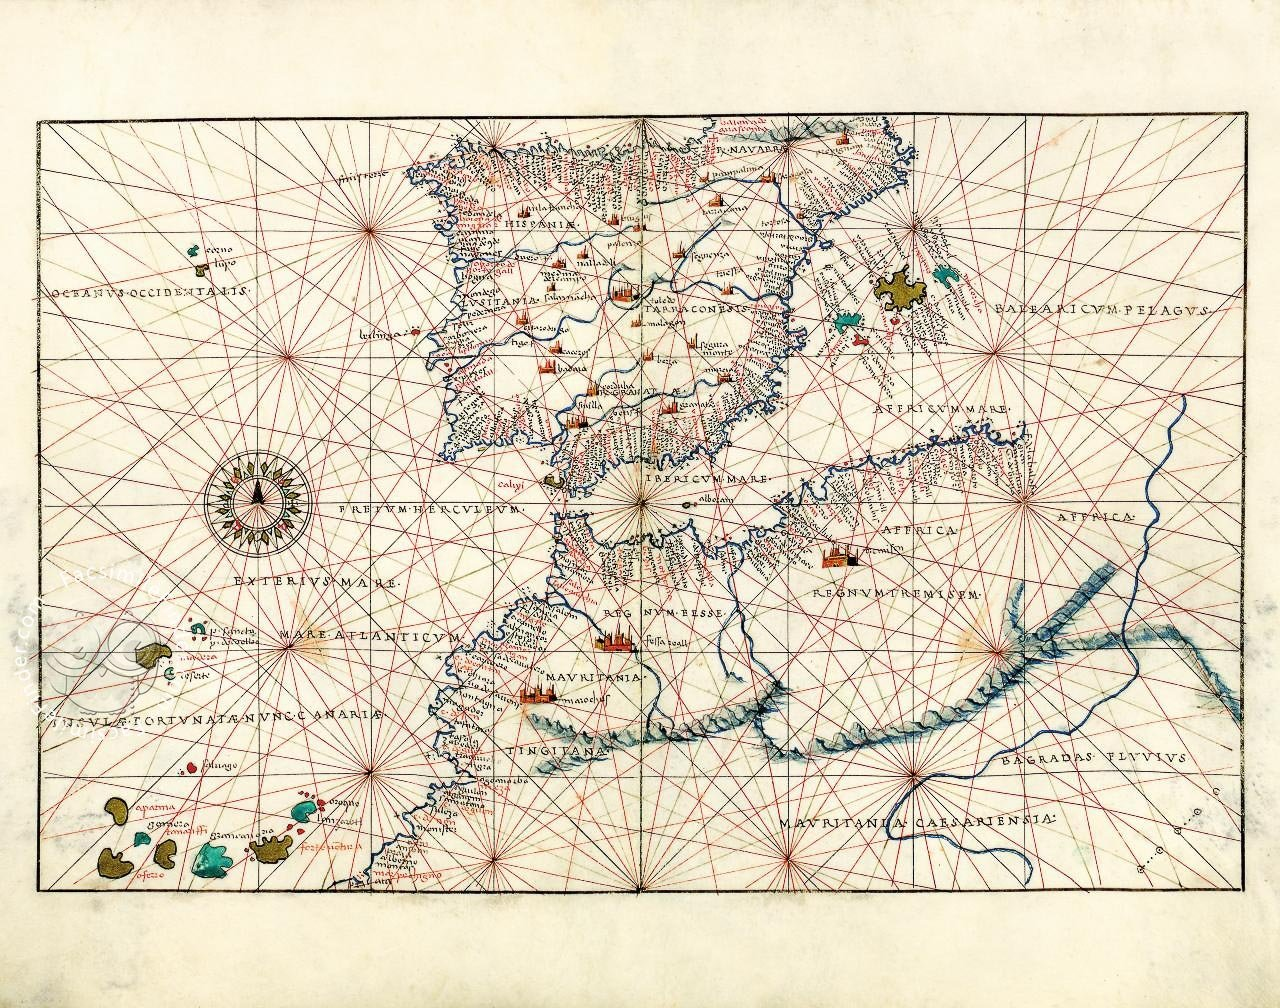 Portolan Atlas of Battista Agnese